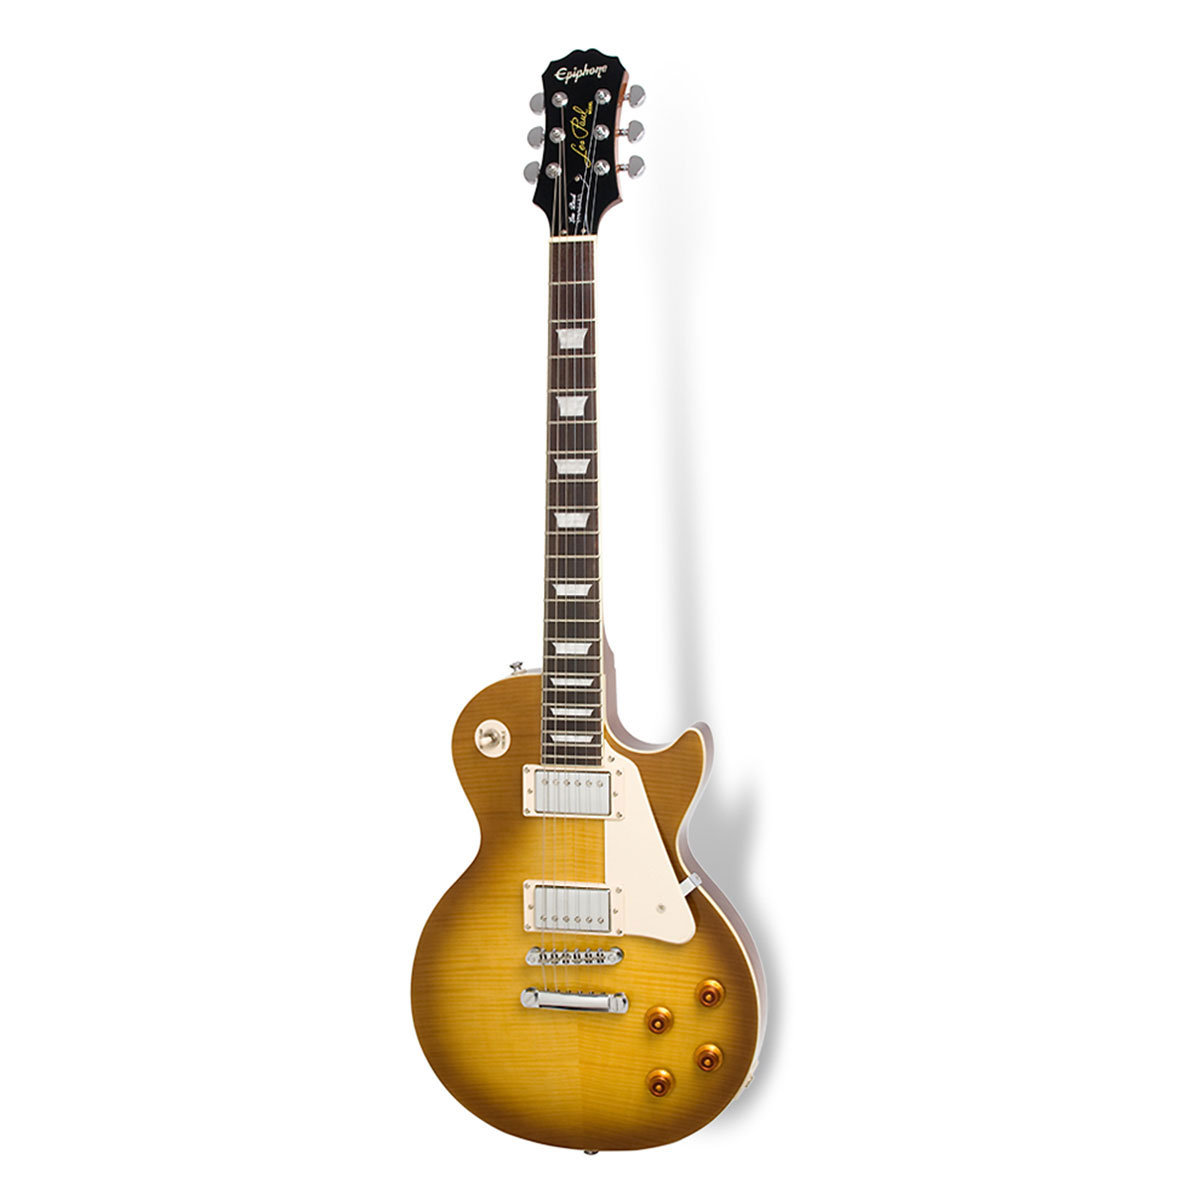 Epiphone - Les Paul Standard Plus top Pro Honey burst